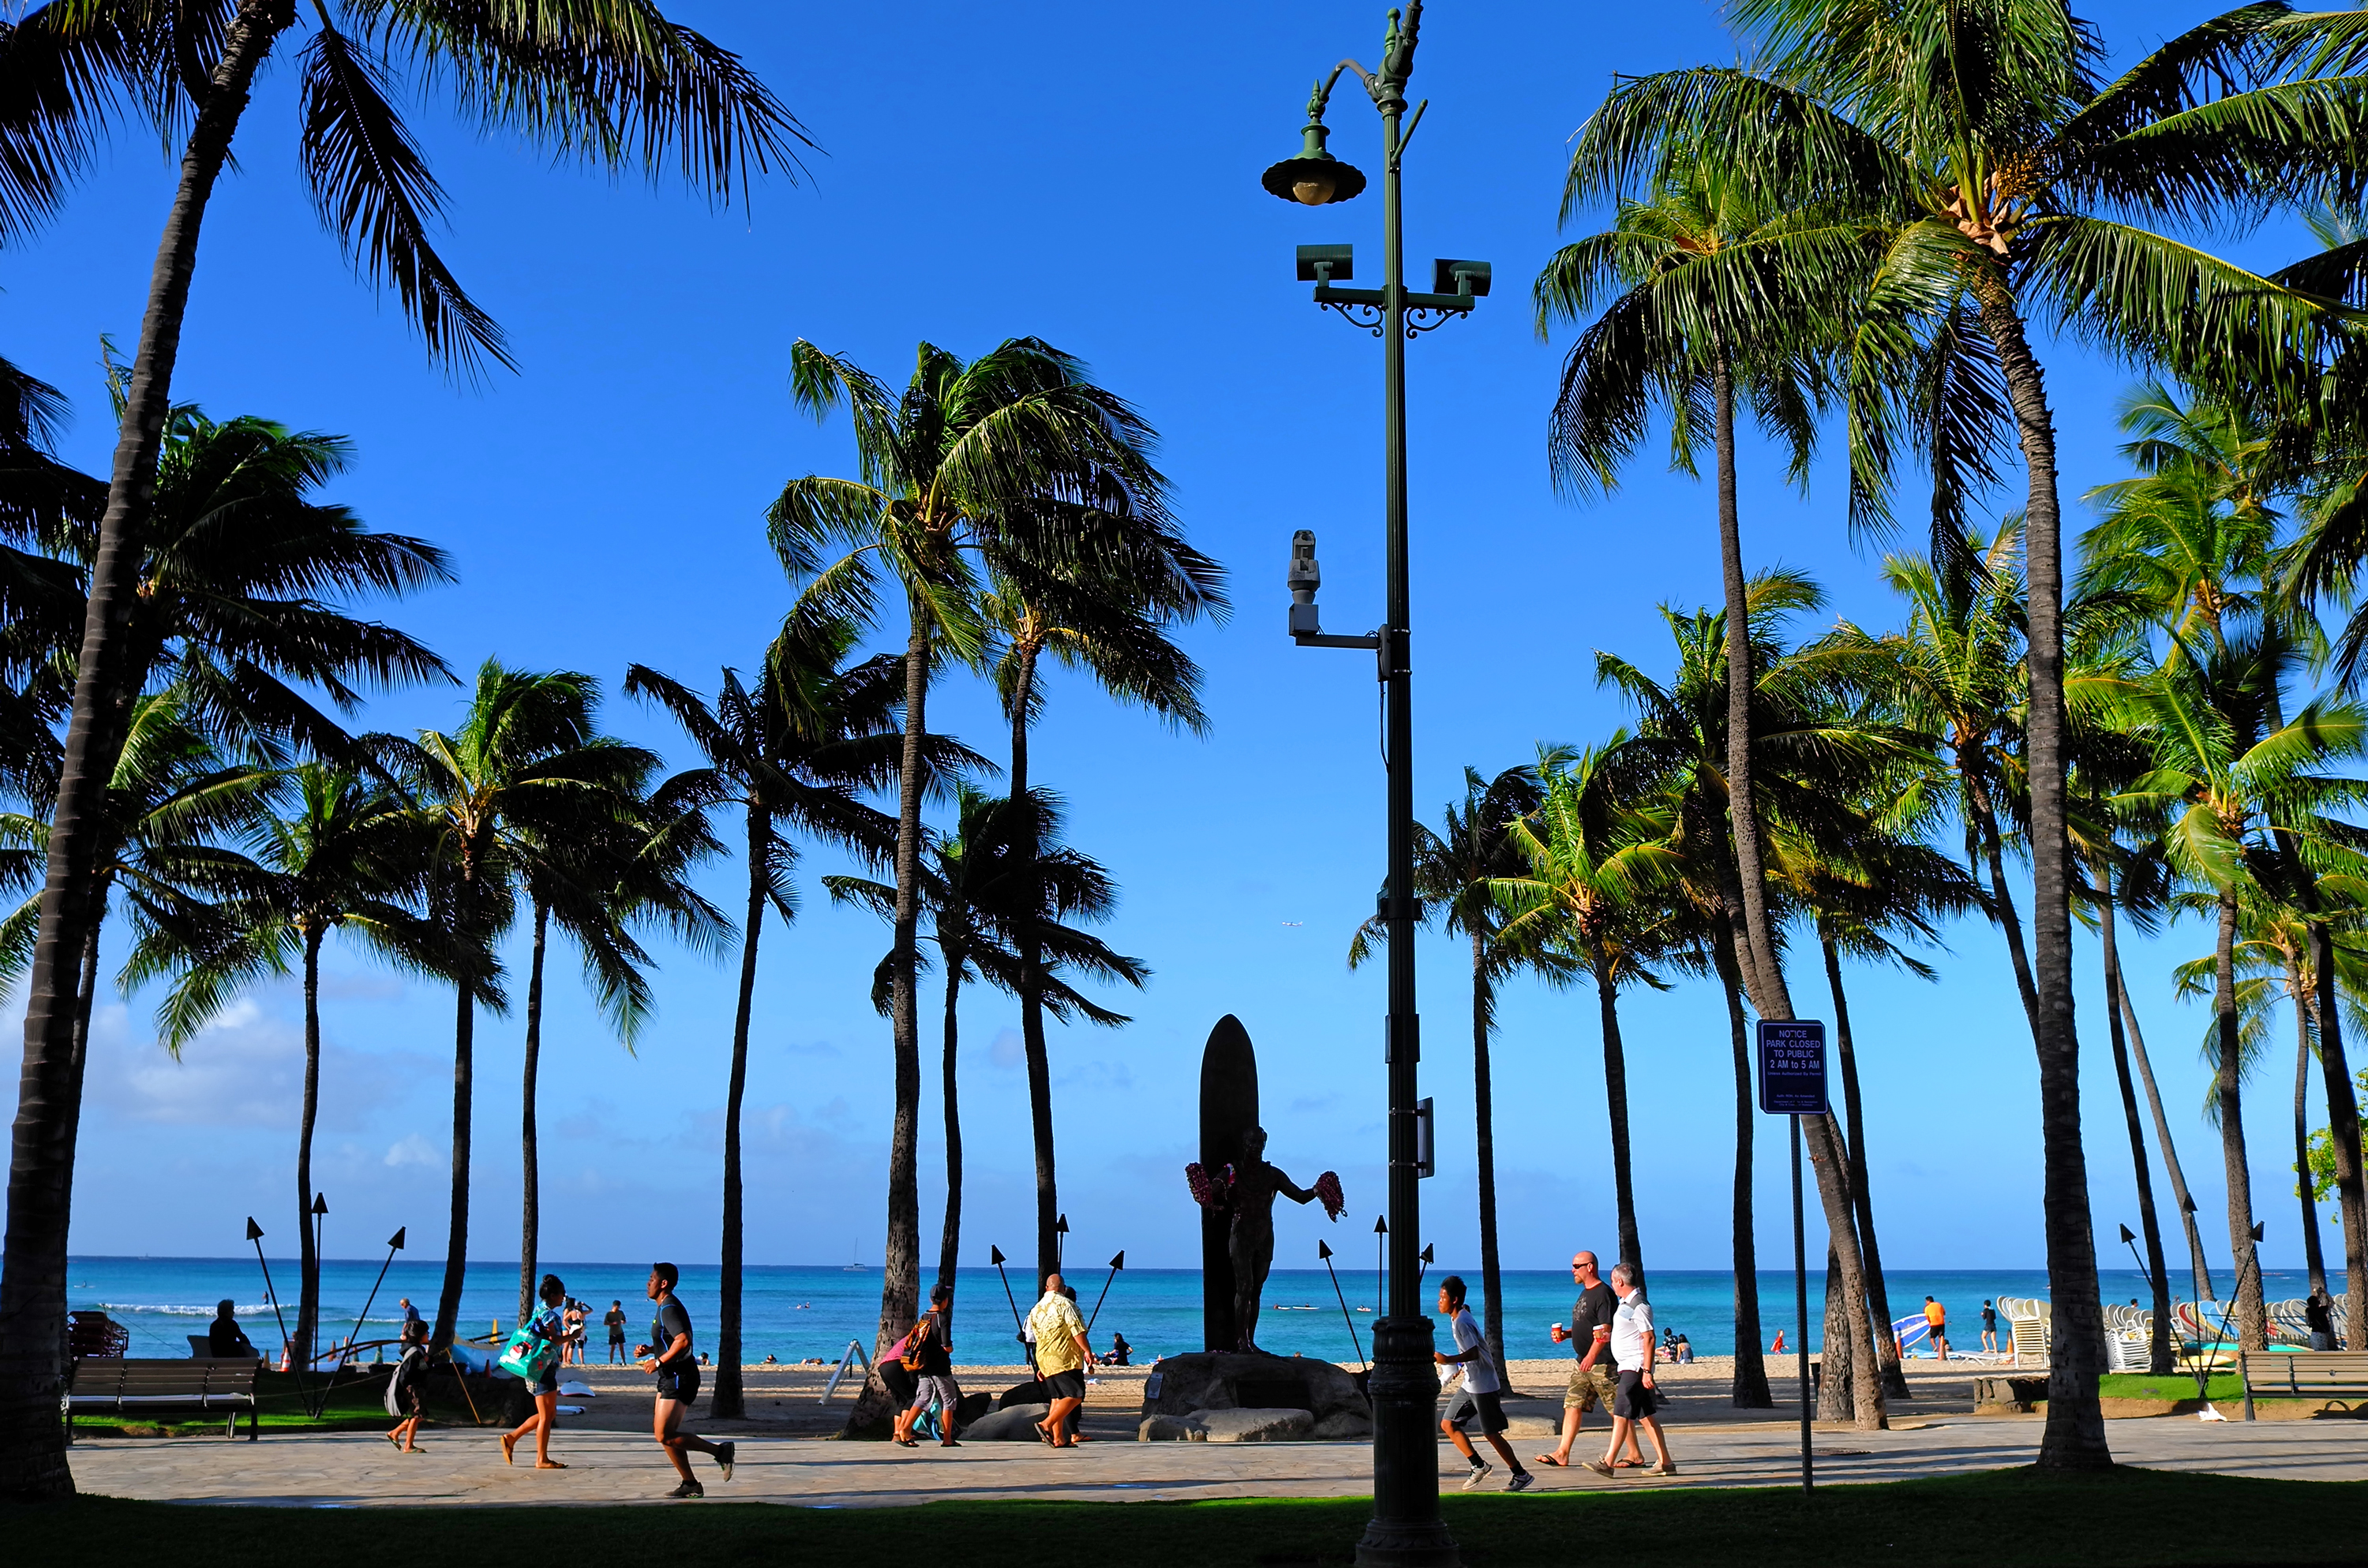 Morning Scene, Waikiki Beach